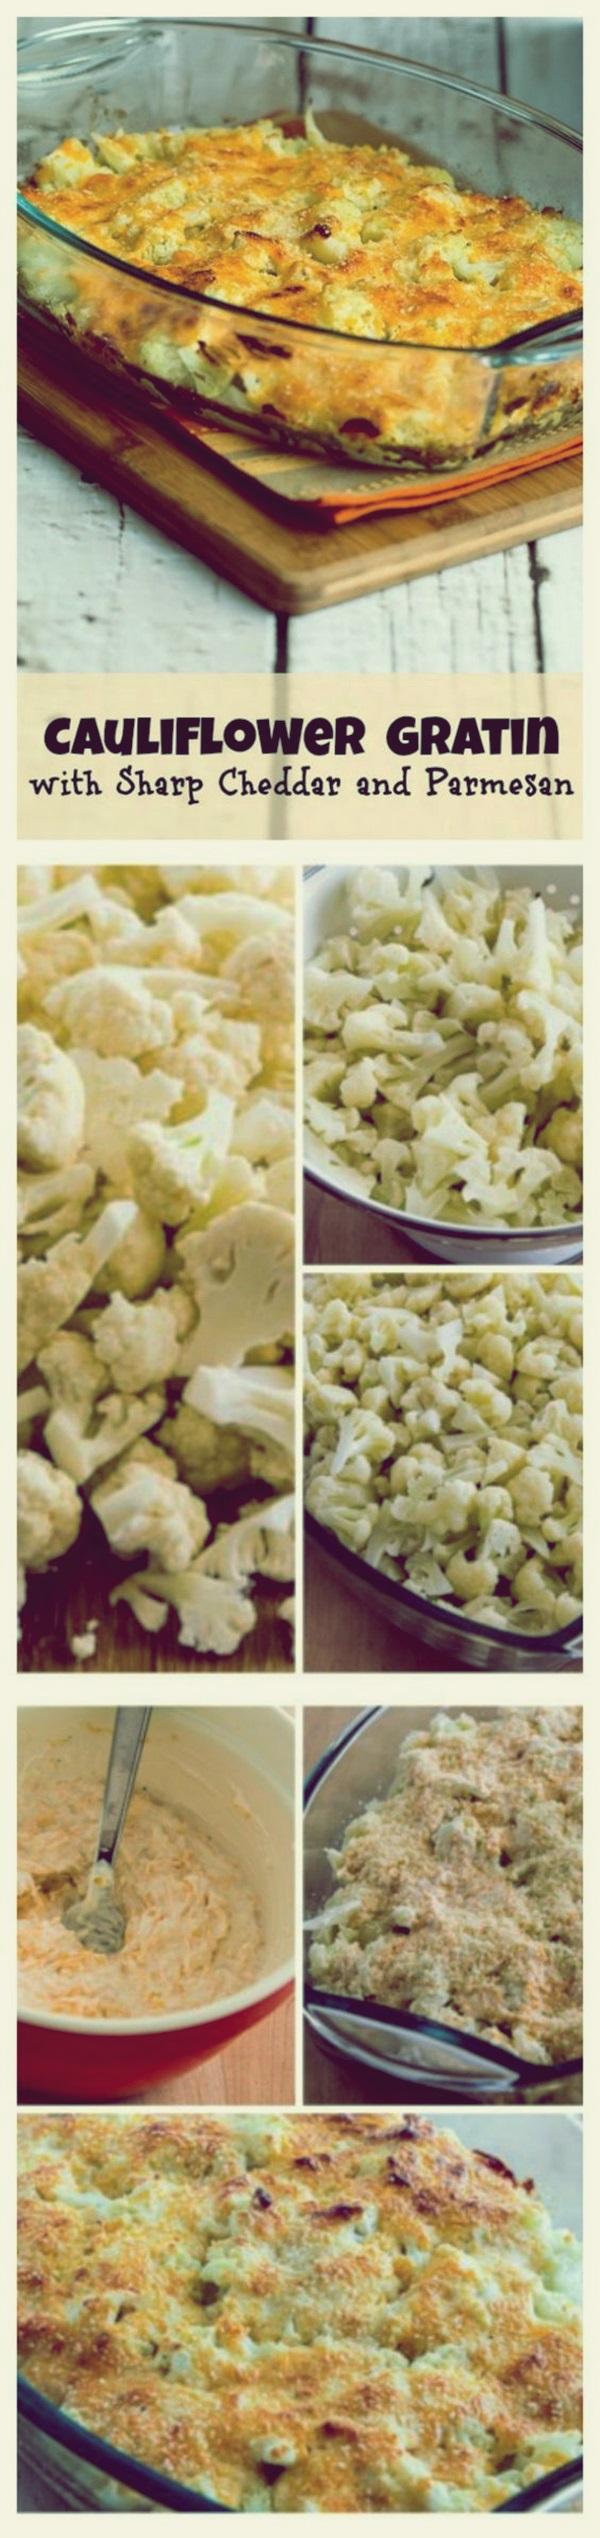 Ways To Use Cauliflower As A Low-Carb Replacement (1)